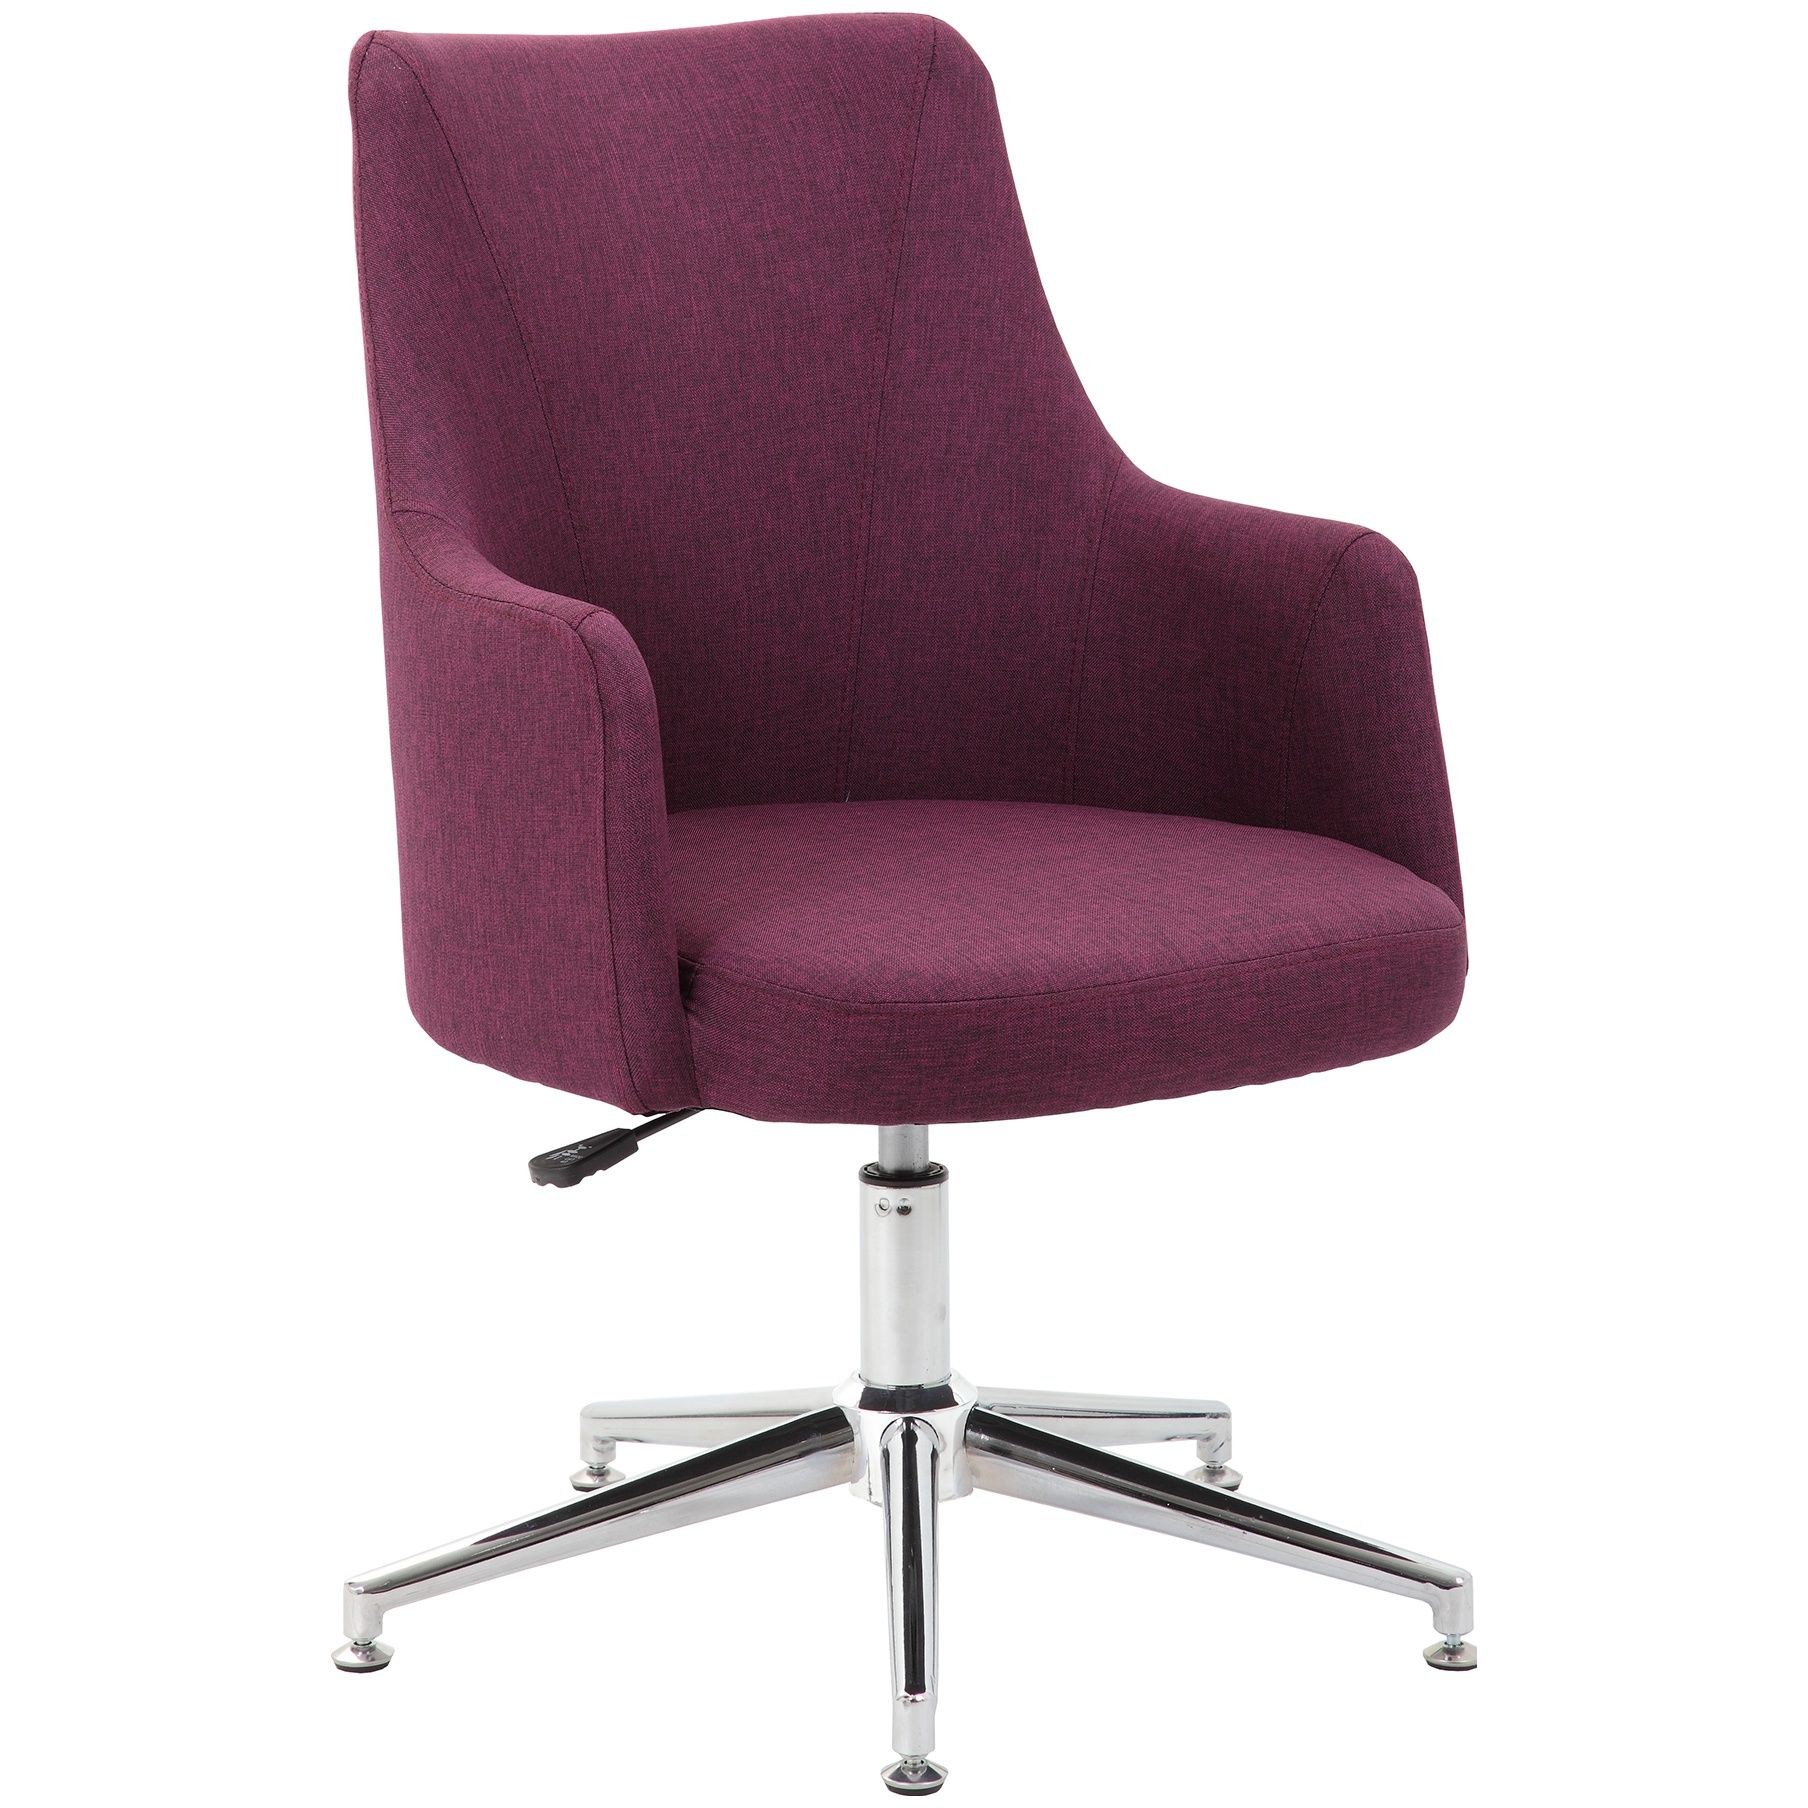 Arran Fabric Swivel Chair Cheap Arran Fabric Swivel